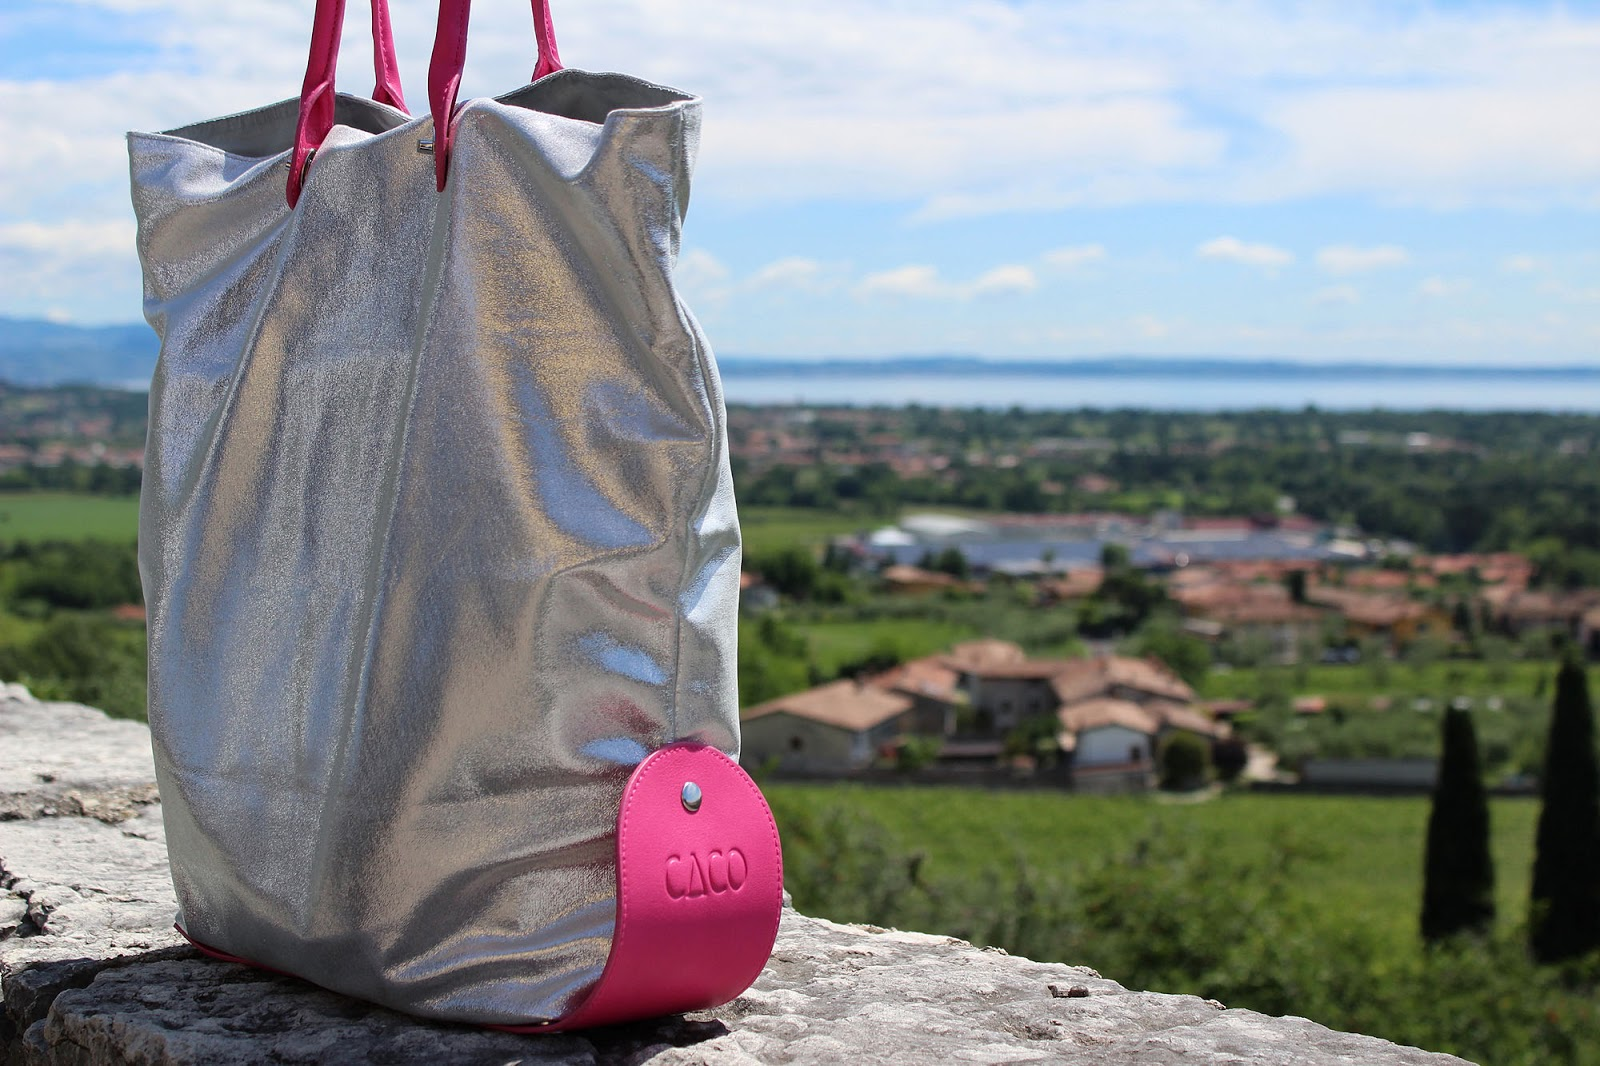 Eniwhere Fashion - Caco Design - One Bag - Lago di Garda